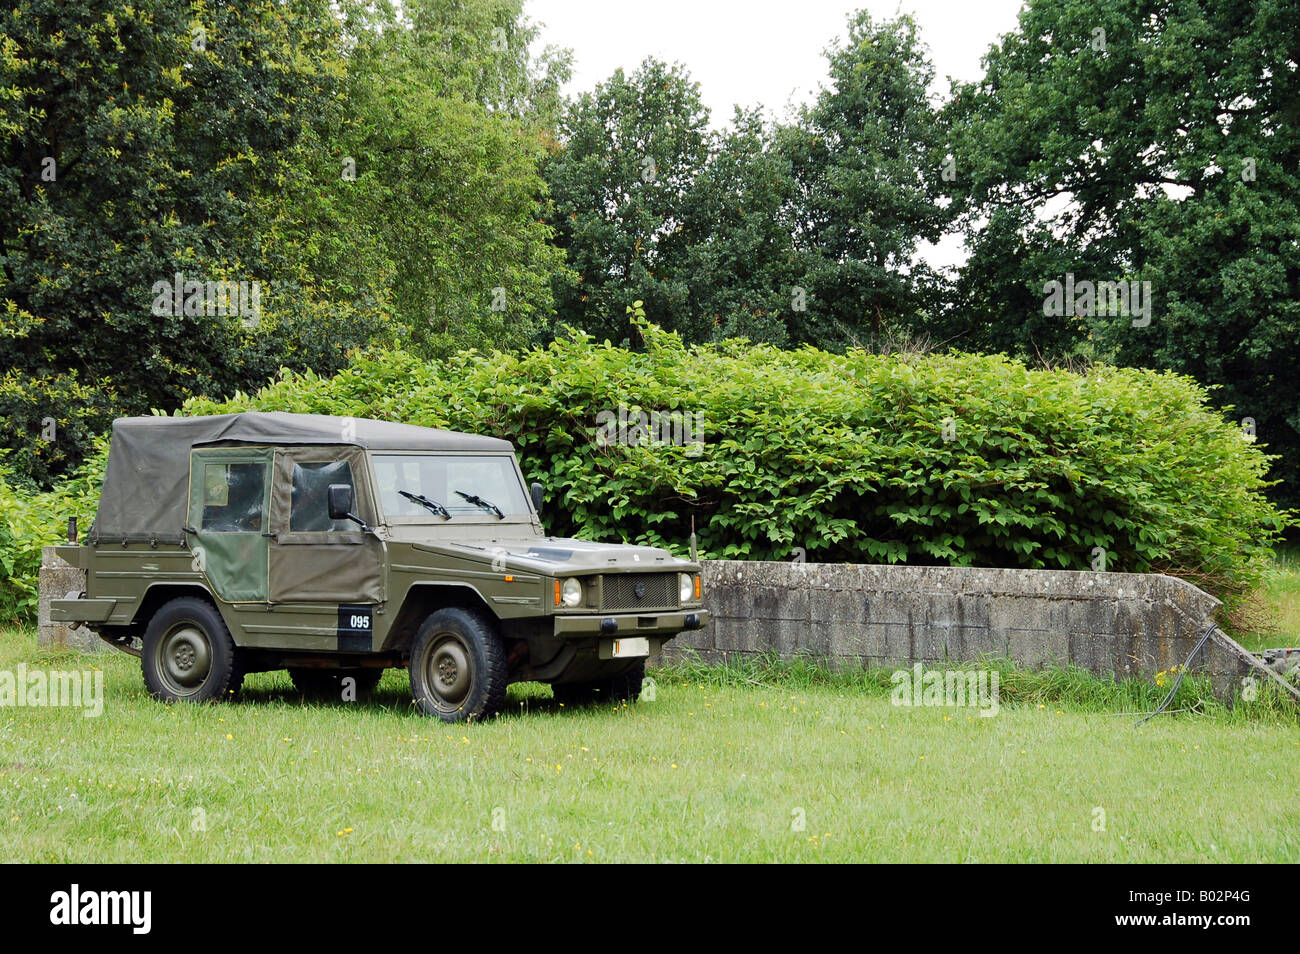 The VW Iltis Jeep used by the Belgian Army. - Stock Image